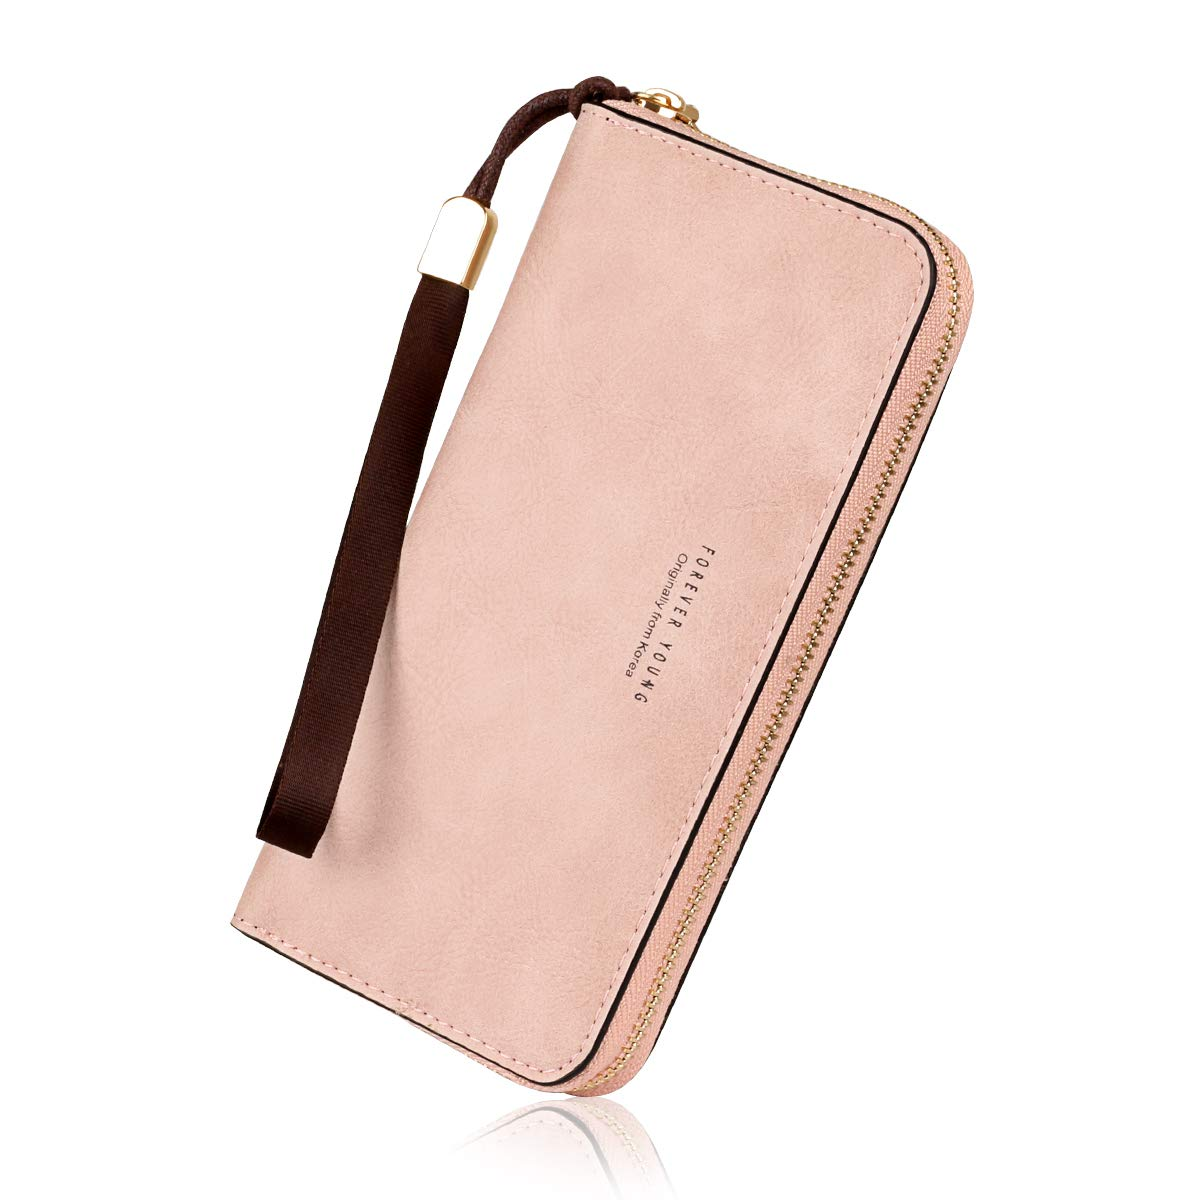 Wallets for Women, Long Leather Checkbook Card Holder Purse Zipper Buckle Elegant Clutch Ladies Wallet Coin Purse (Pink)